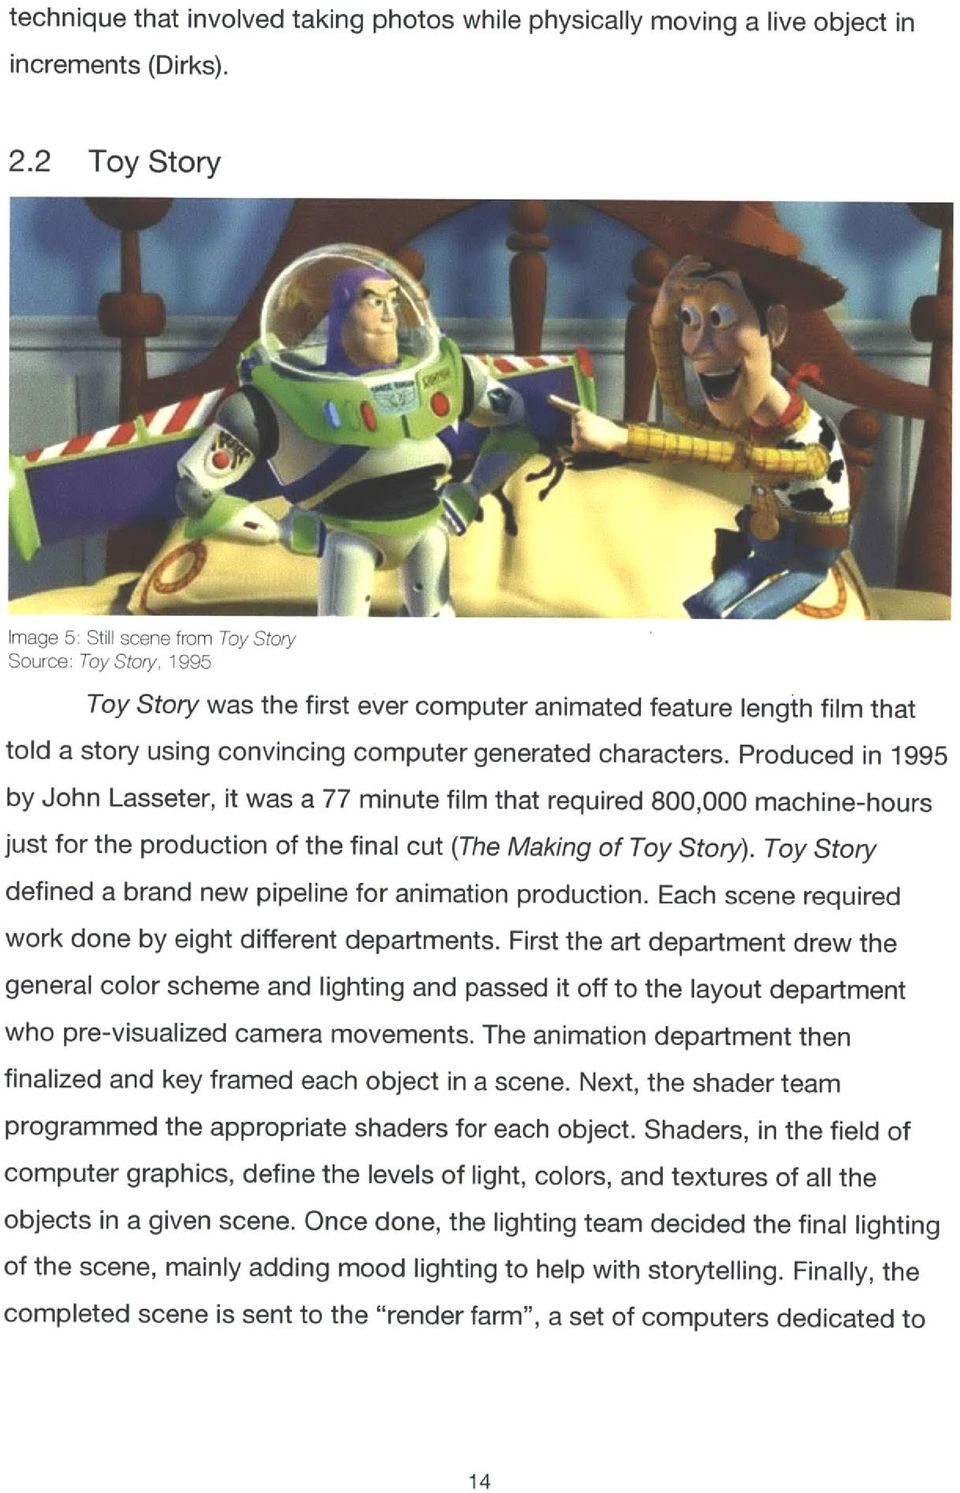 characters. Produced in 1995 by John Lasseter, it was a 77 minute film that required 800,000 machine-hours just for the production of the final cut (The Making of Toy Story).